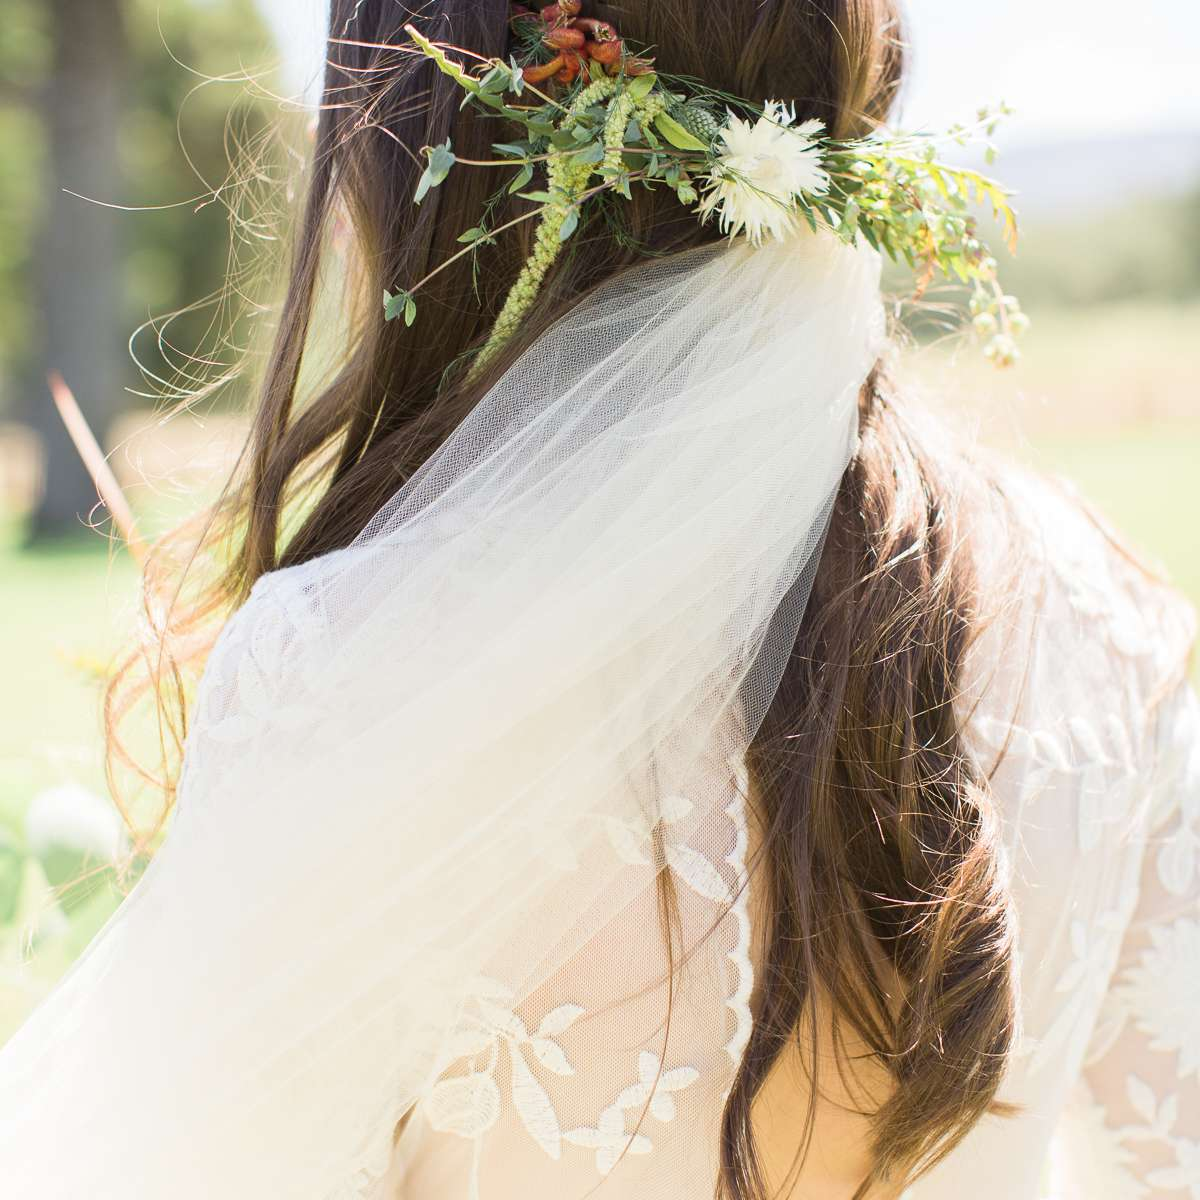 <p>Bride veil with greenery accents</p><br><br>